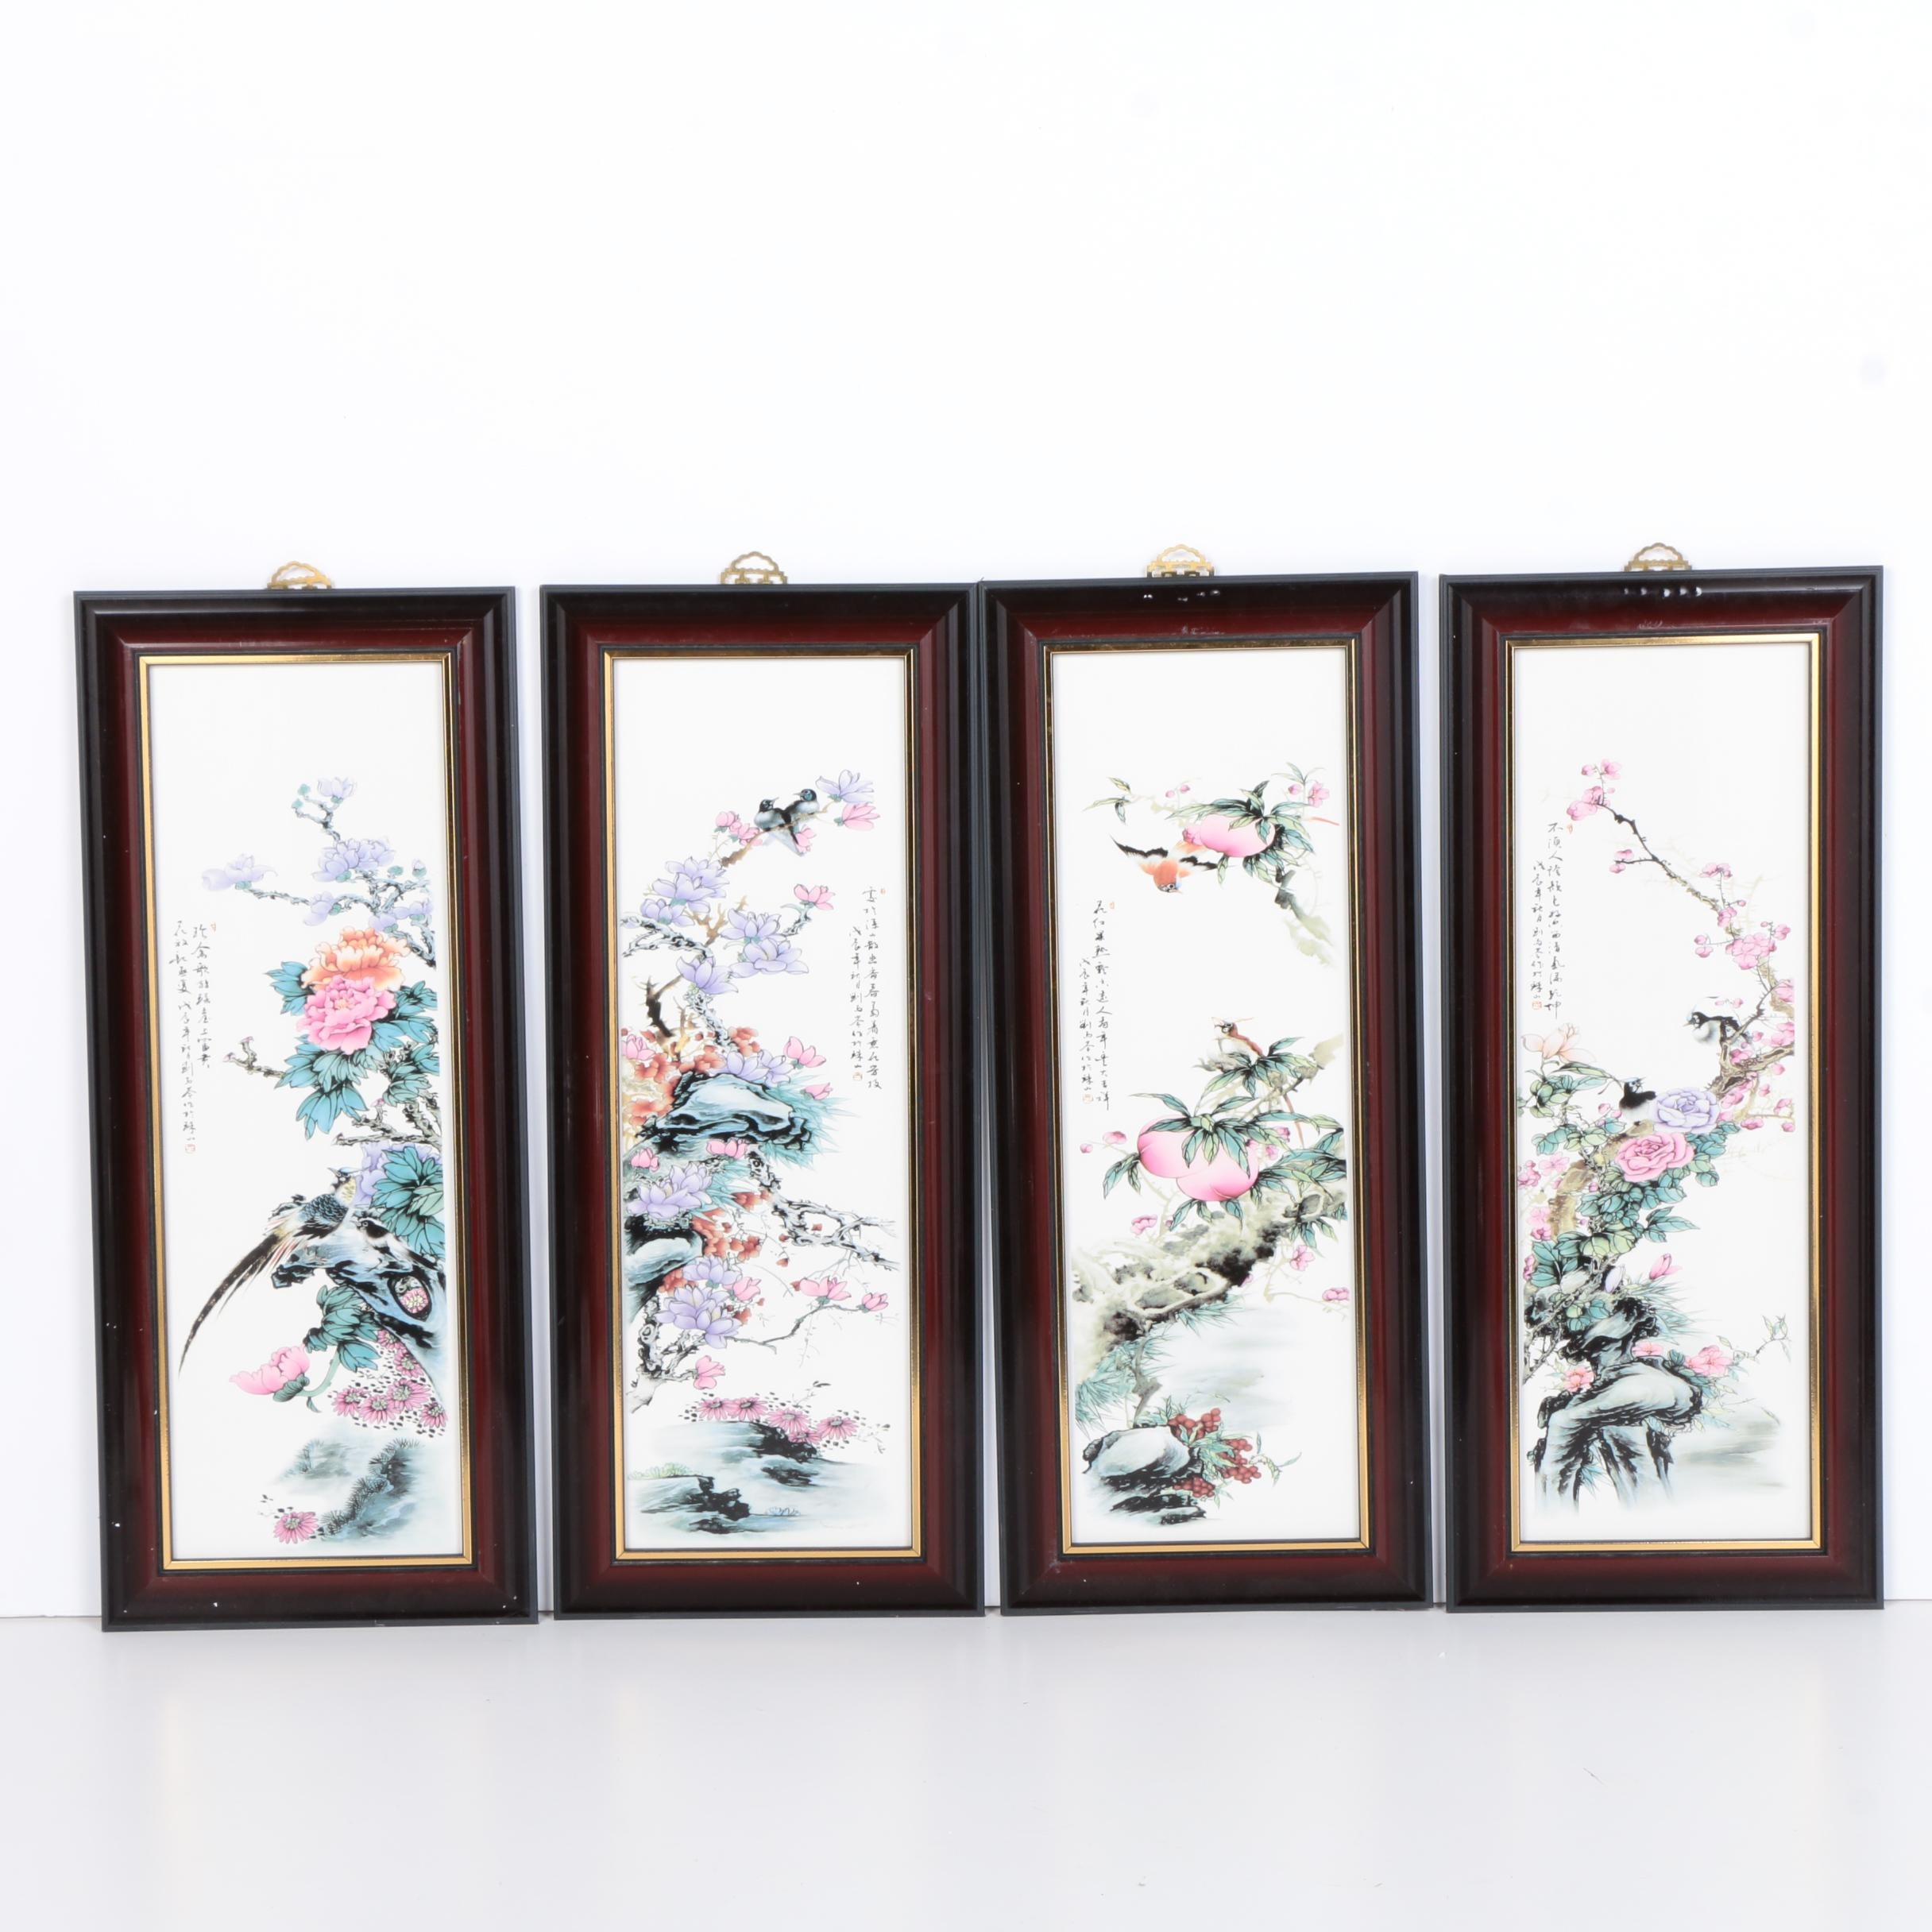 Set of Four Asian Inspired Offset Lithographs on Porcelain